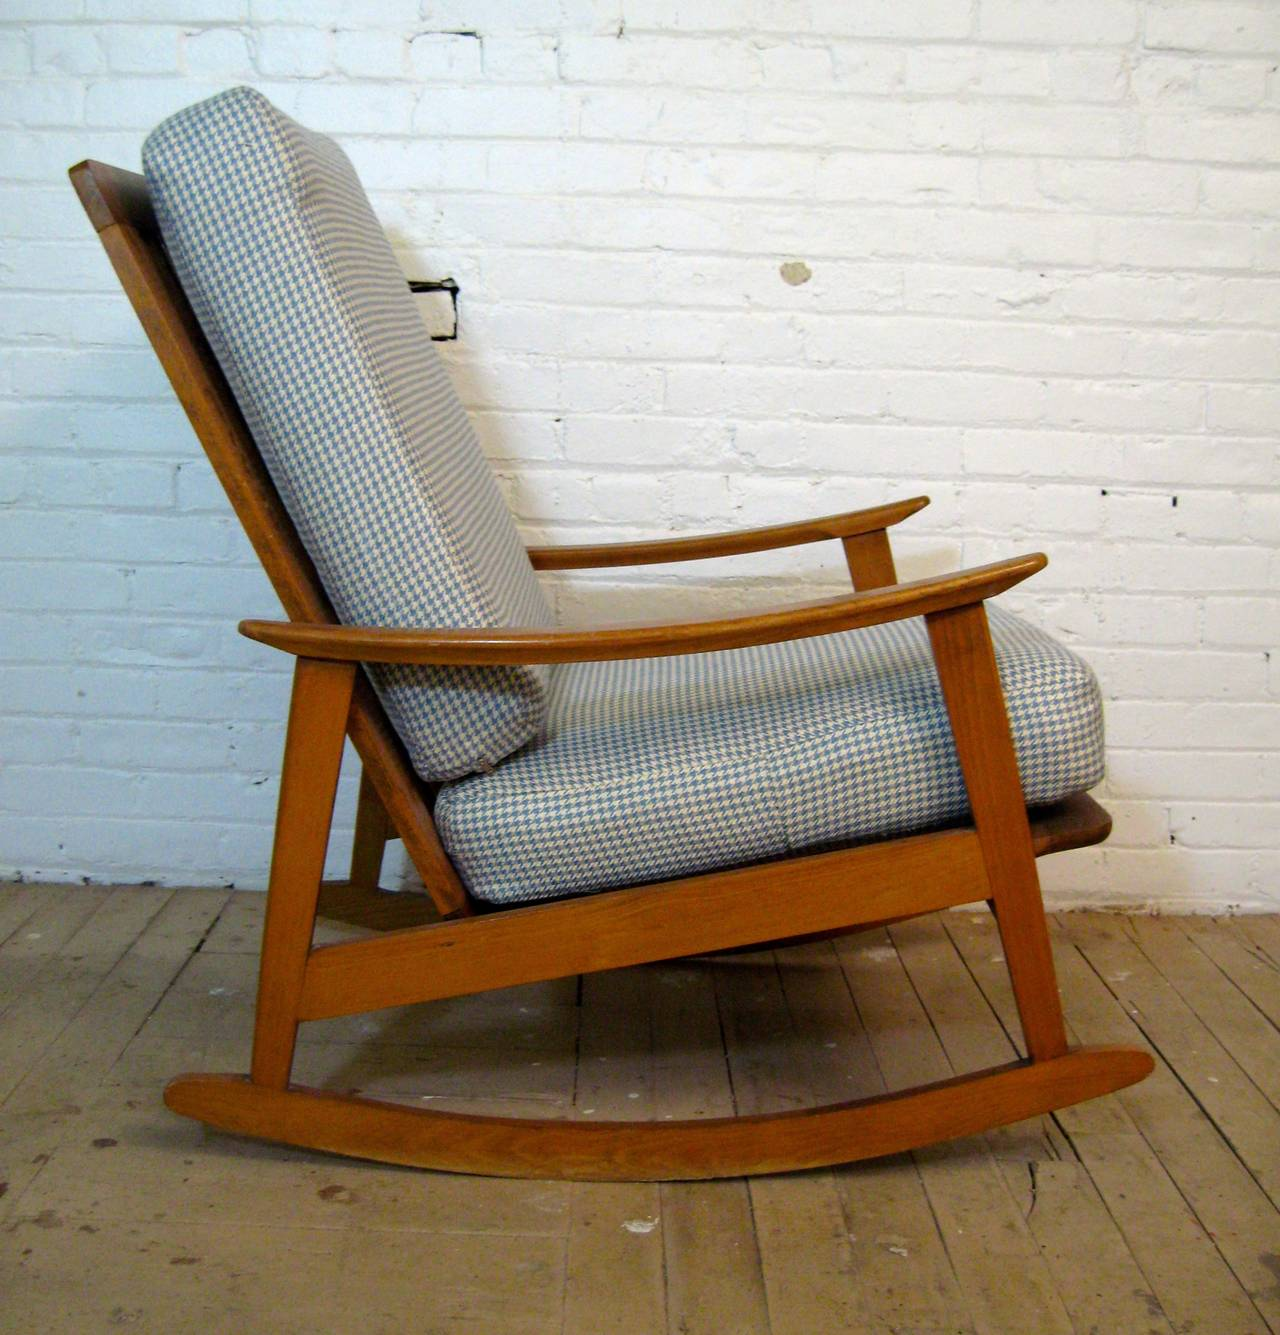 Mid Century Chairs For Sale: Mid-Century Modern Rocking Chair For Sale At 1stdibs